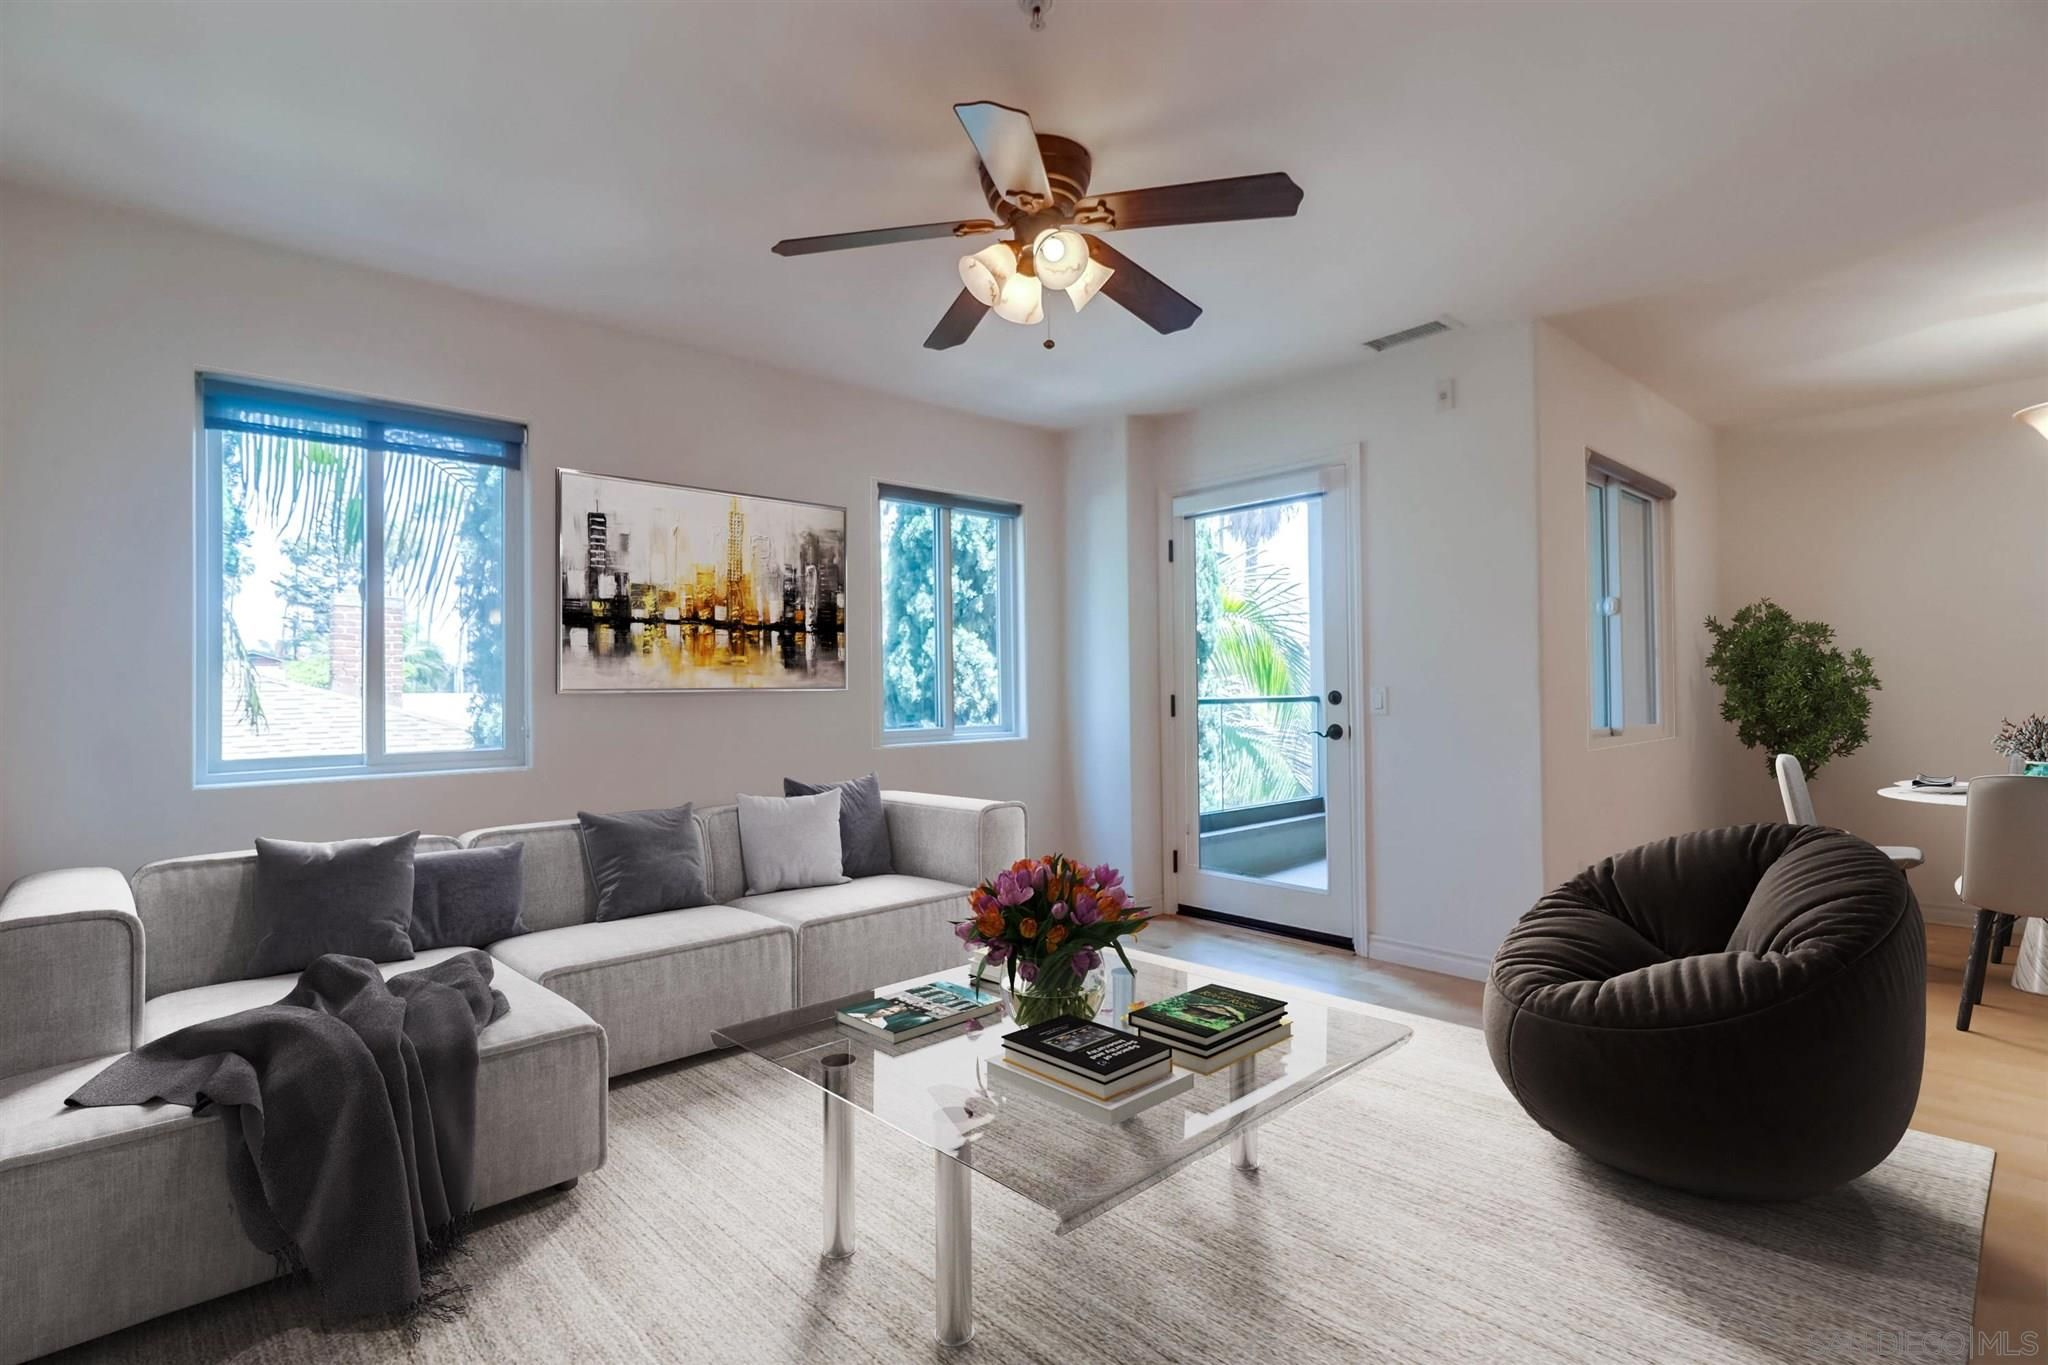 Main Photo: PACIFIC BEACH Townhouse for sale : 3 bedrooms : 4151 Mission Blvd #203 in San Diego